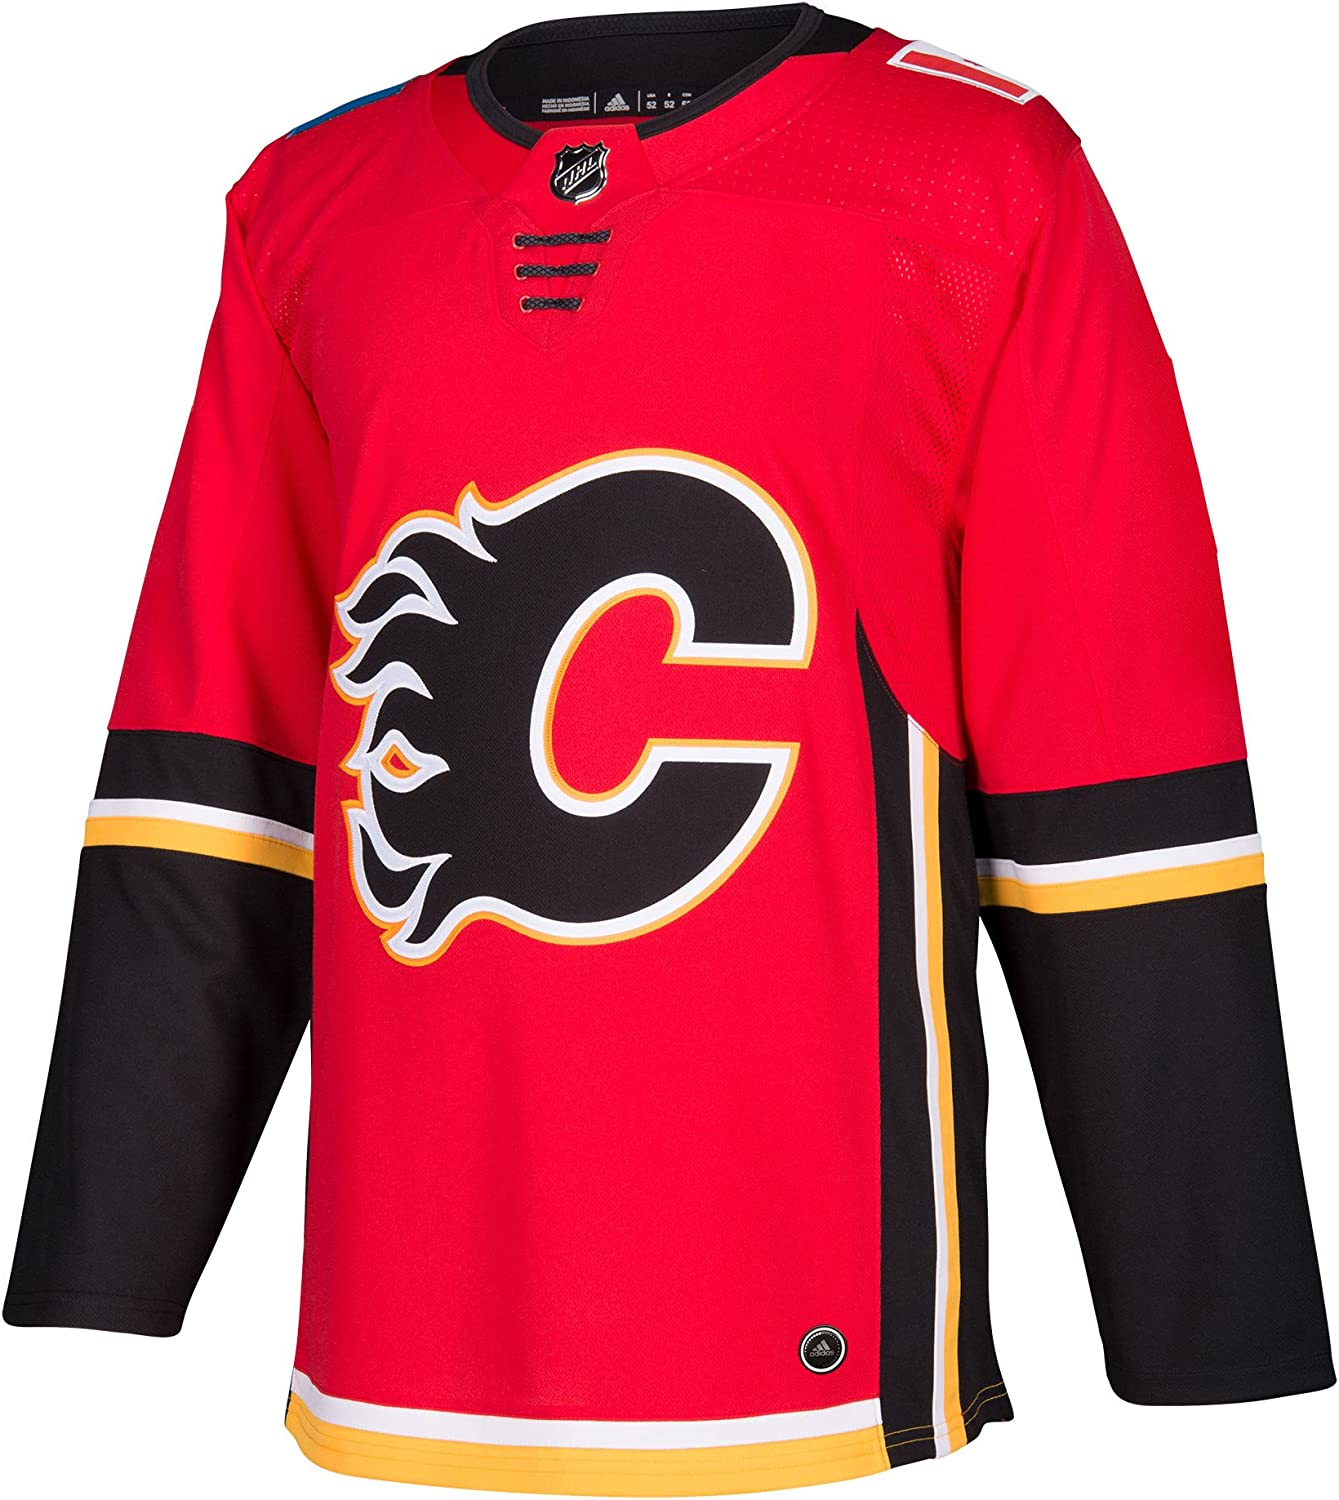 Calgary Flames Nhl Authentic Pro Home Jersey Jerseys Amazon Canada